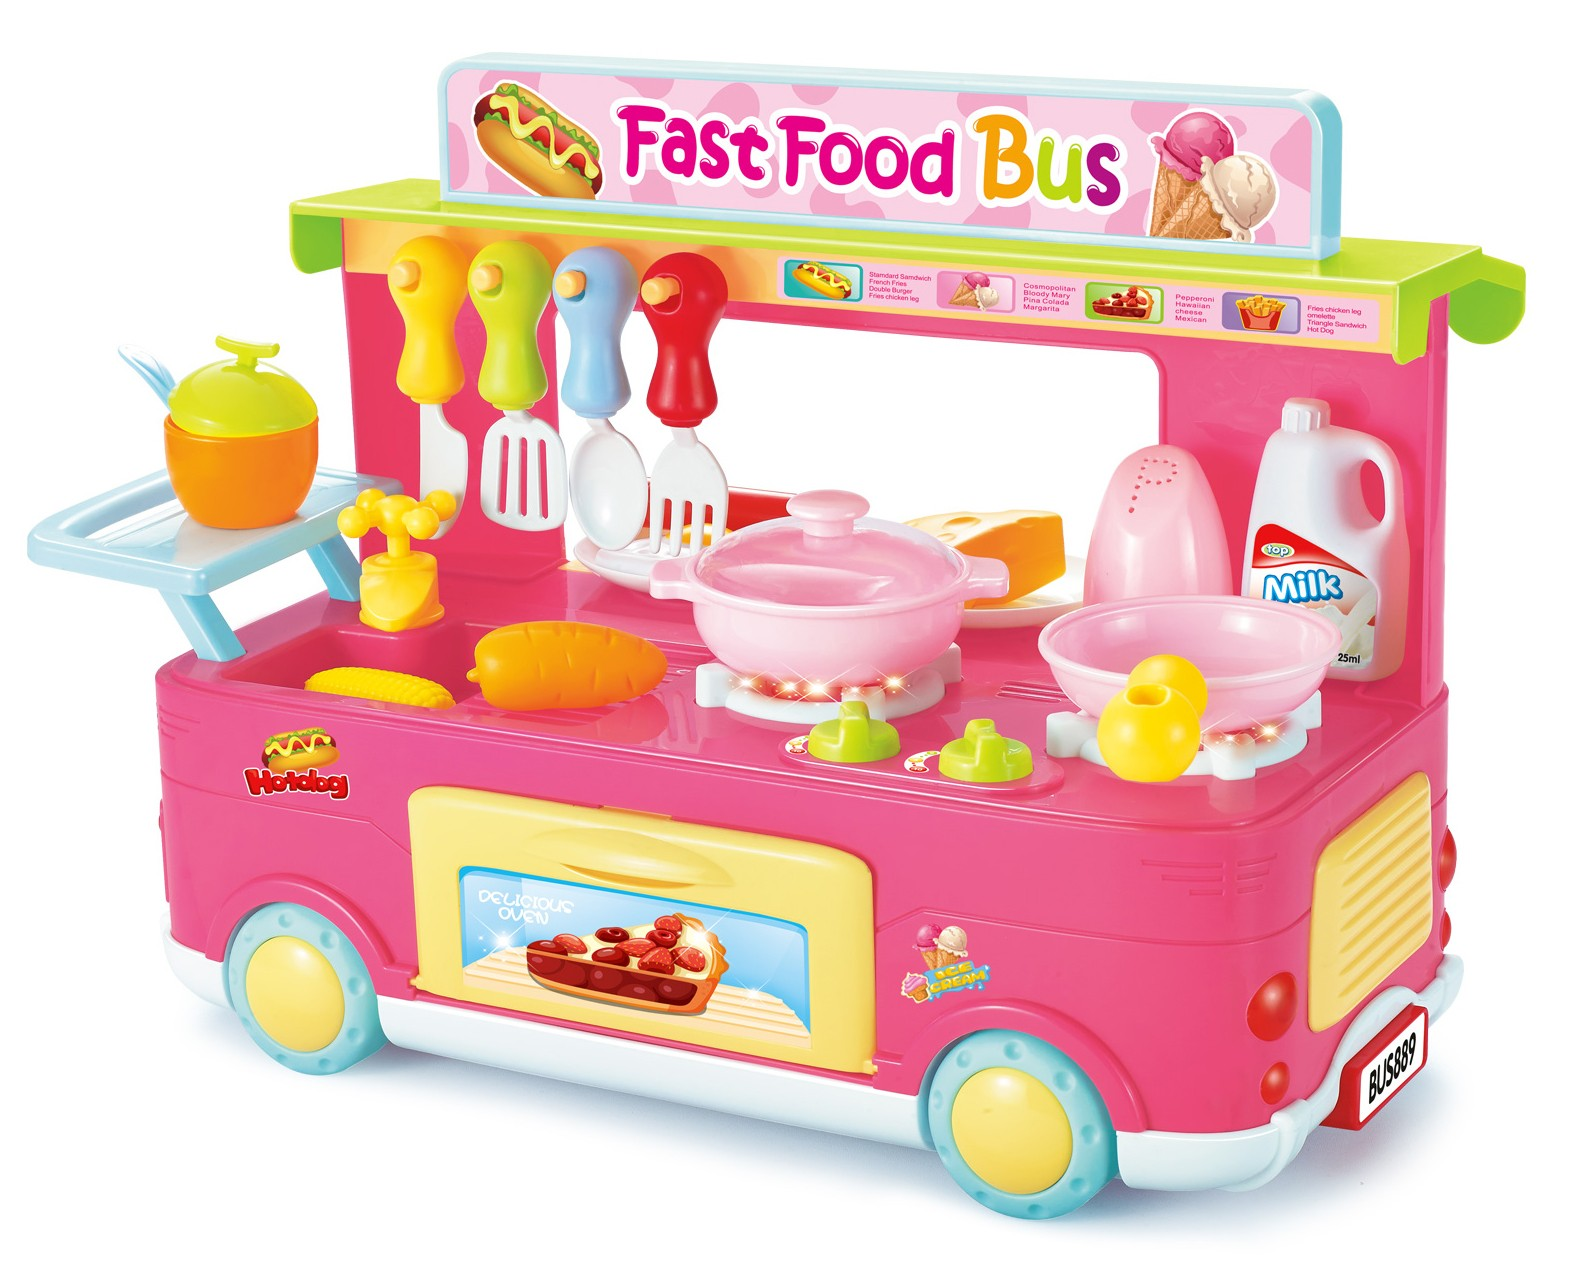 Fast Food Bus Kitchen Play Set Toy 29pcs (Pink)